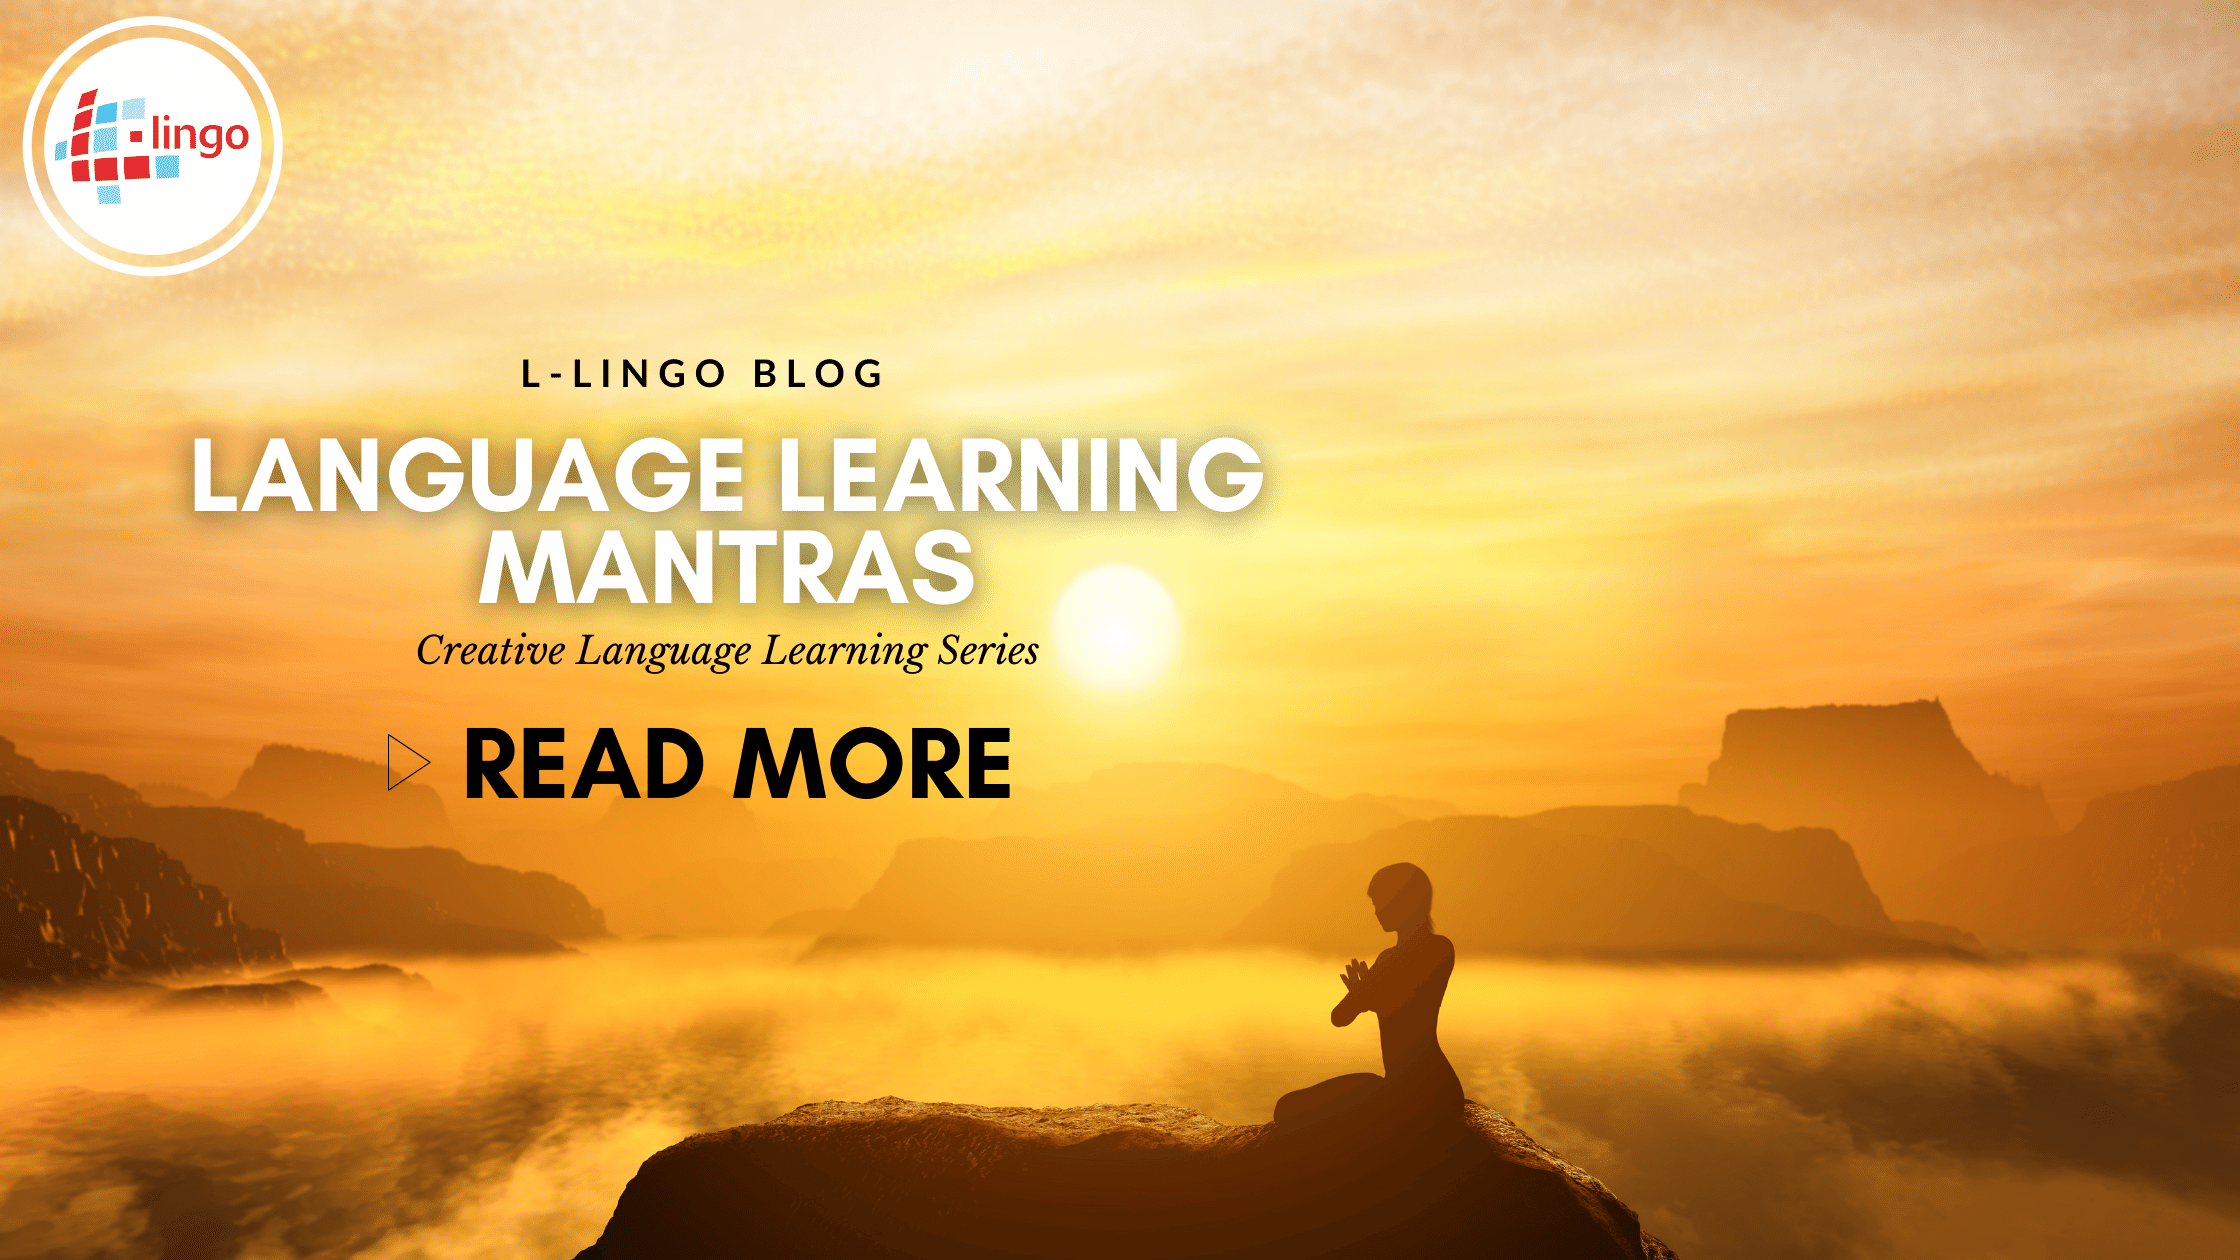 L-Lingo Blog: Language Learning Mantras